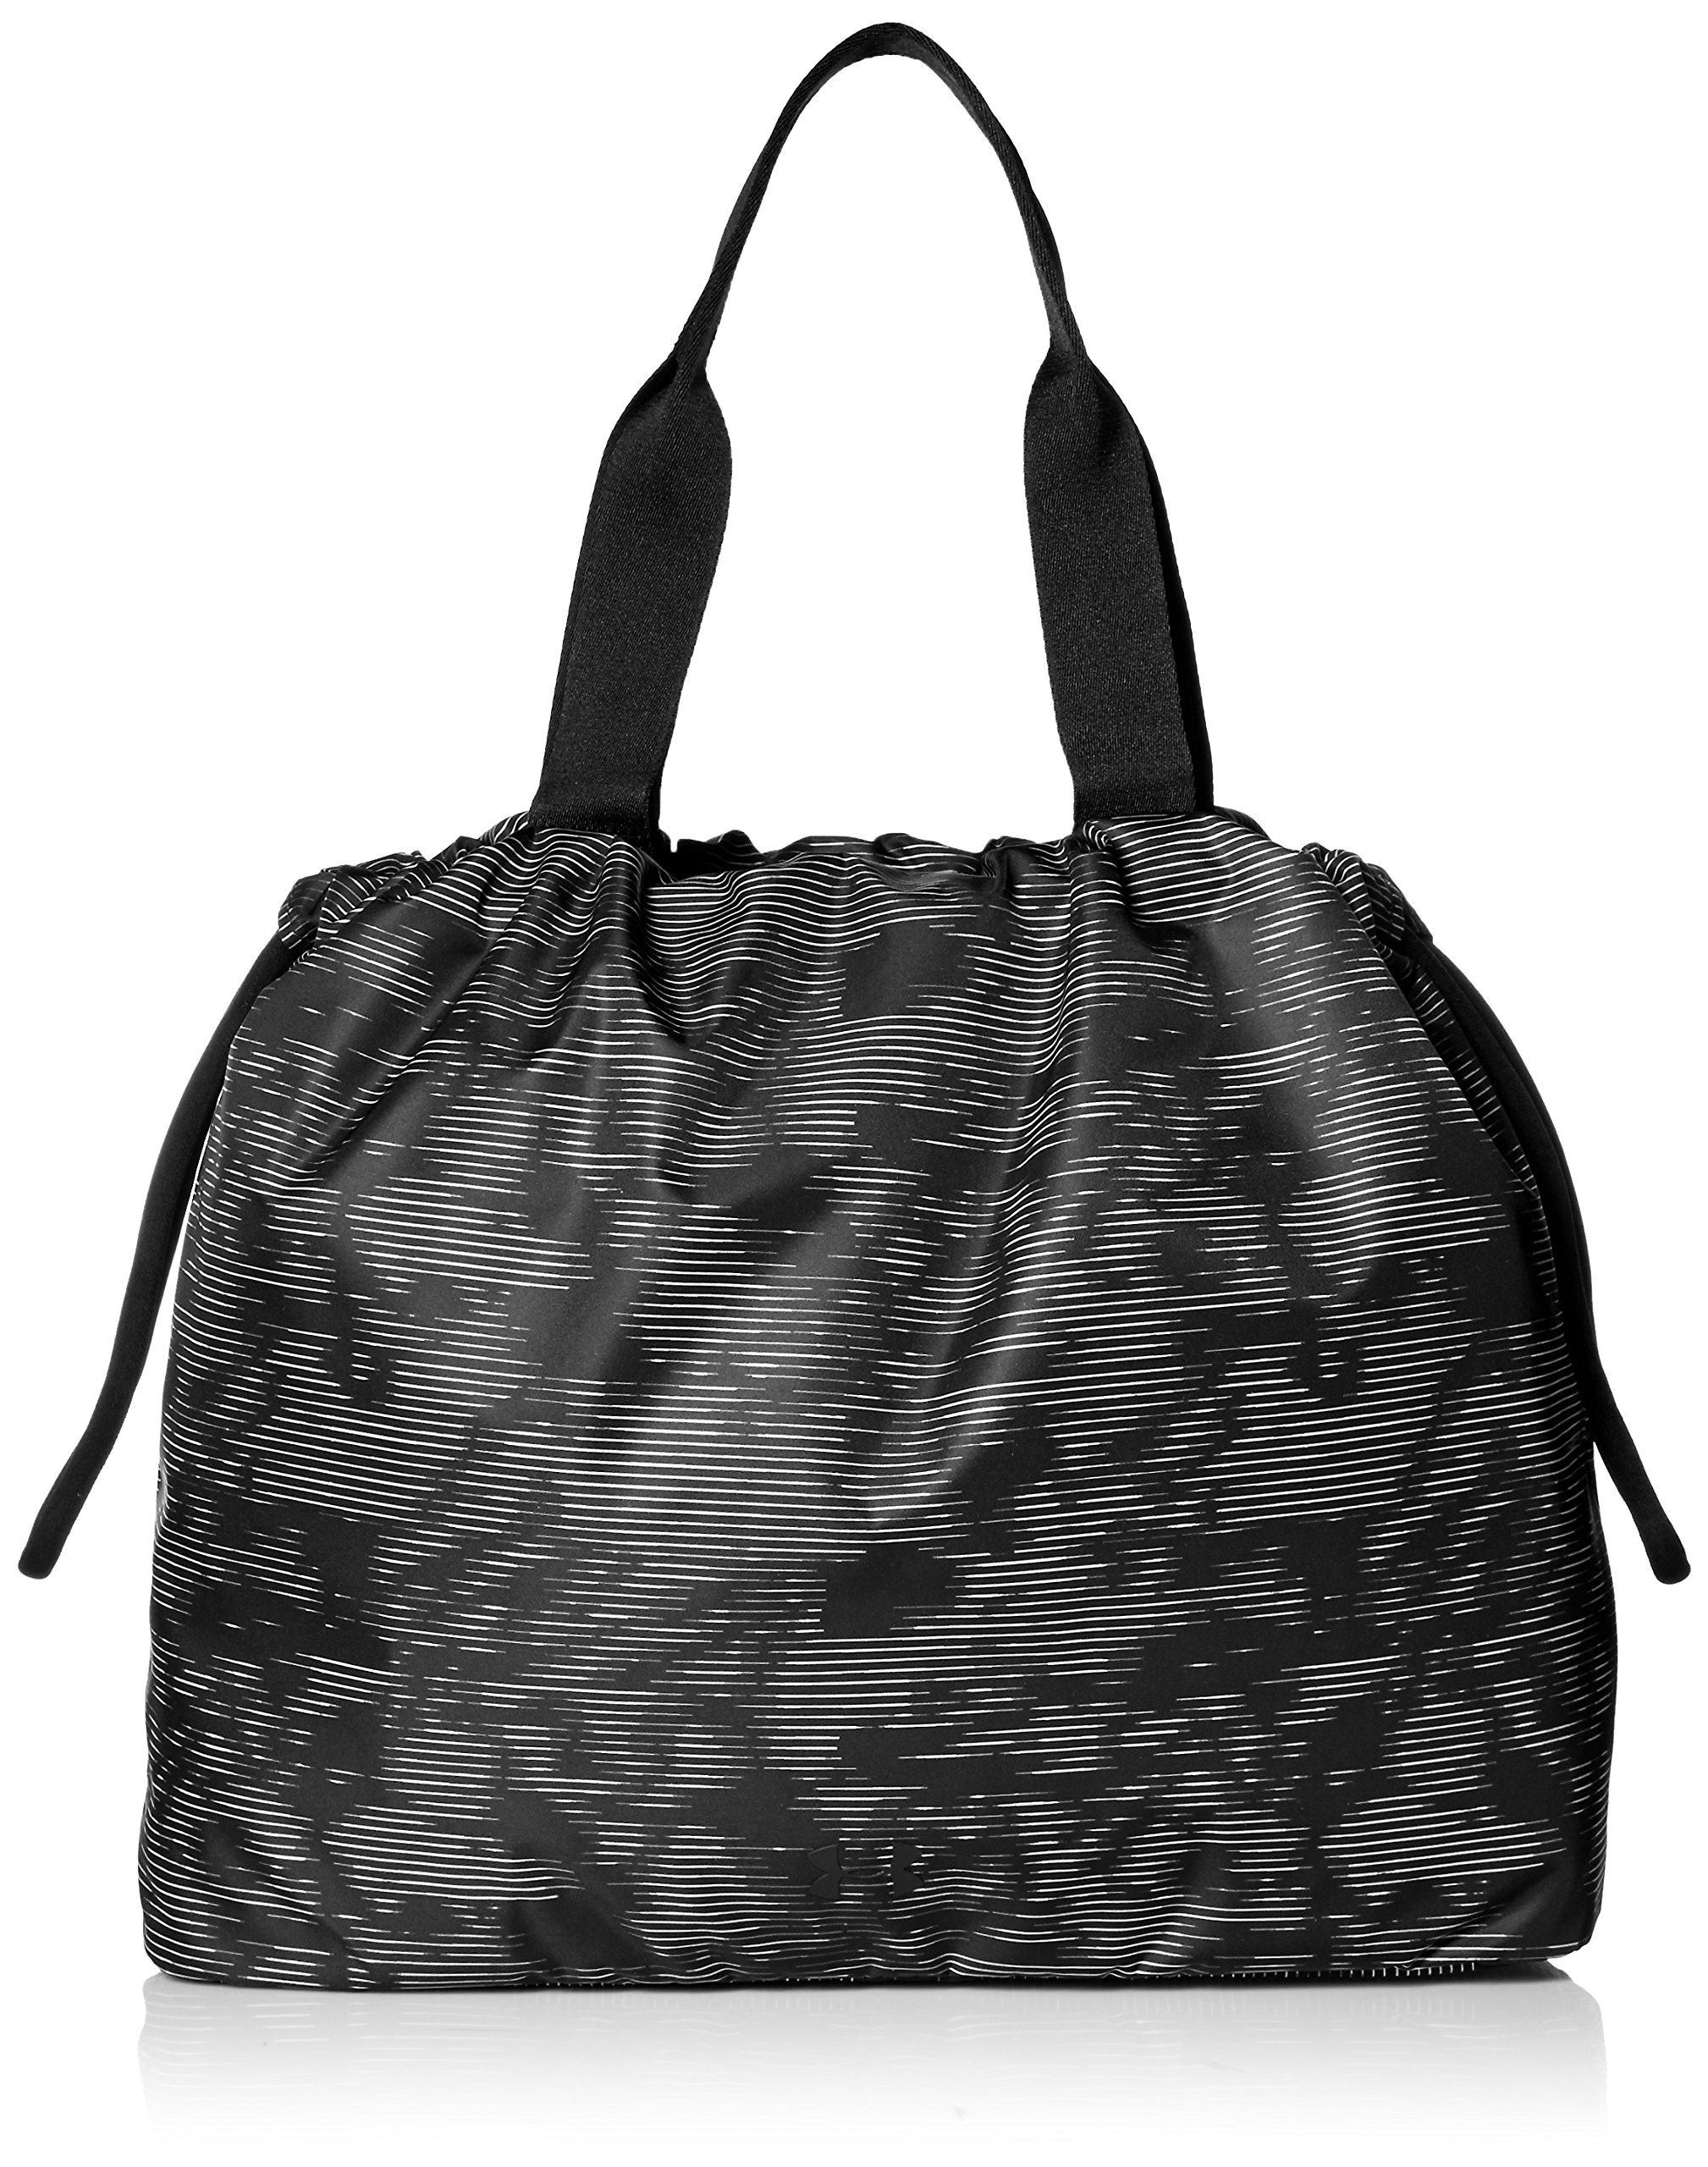 Under Armour Women's Cinch Printed Tote, Black